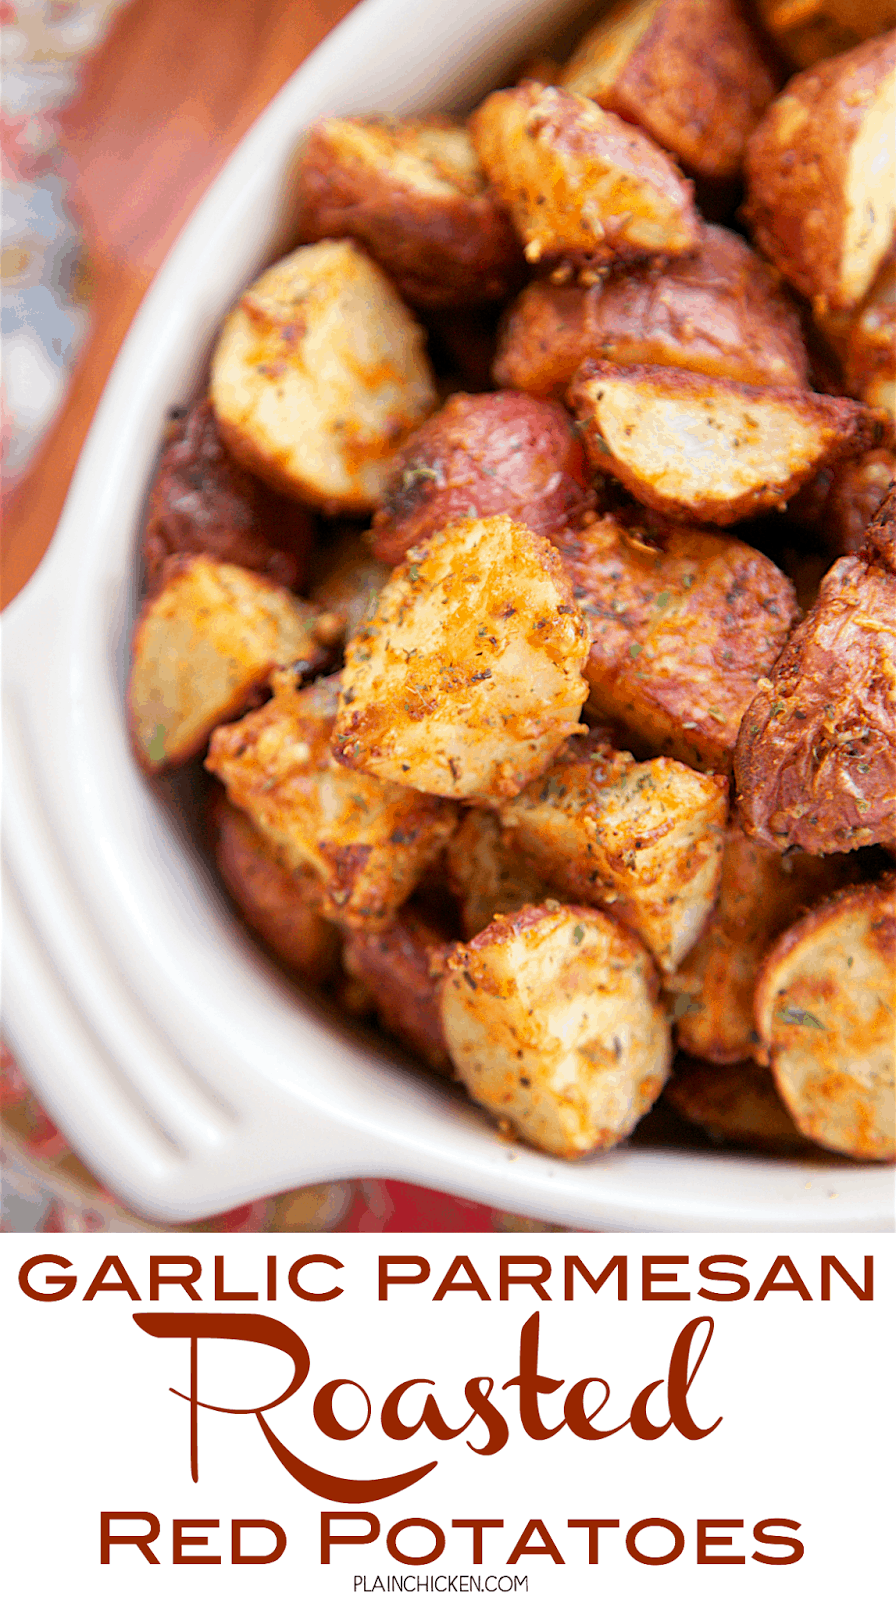 Garlic Parmesan Roasted Red Potatoes - red potatoes tossed in garlic, onion, paprika, Italian seasoning and parmesan cheese - SO delicious! A super quick and easy side dish. Ready for the oven in minutes! Great with burgers, chicken, steak and pork. The whole family loves these yummy potatoes!